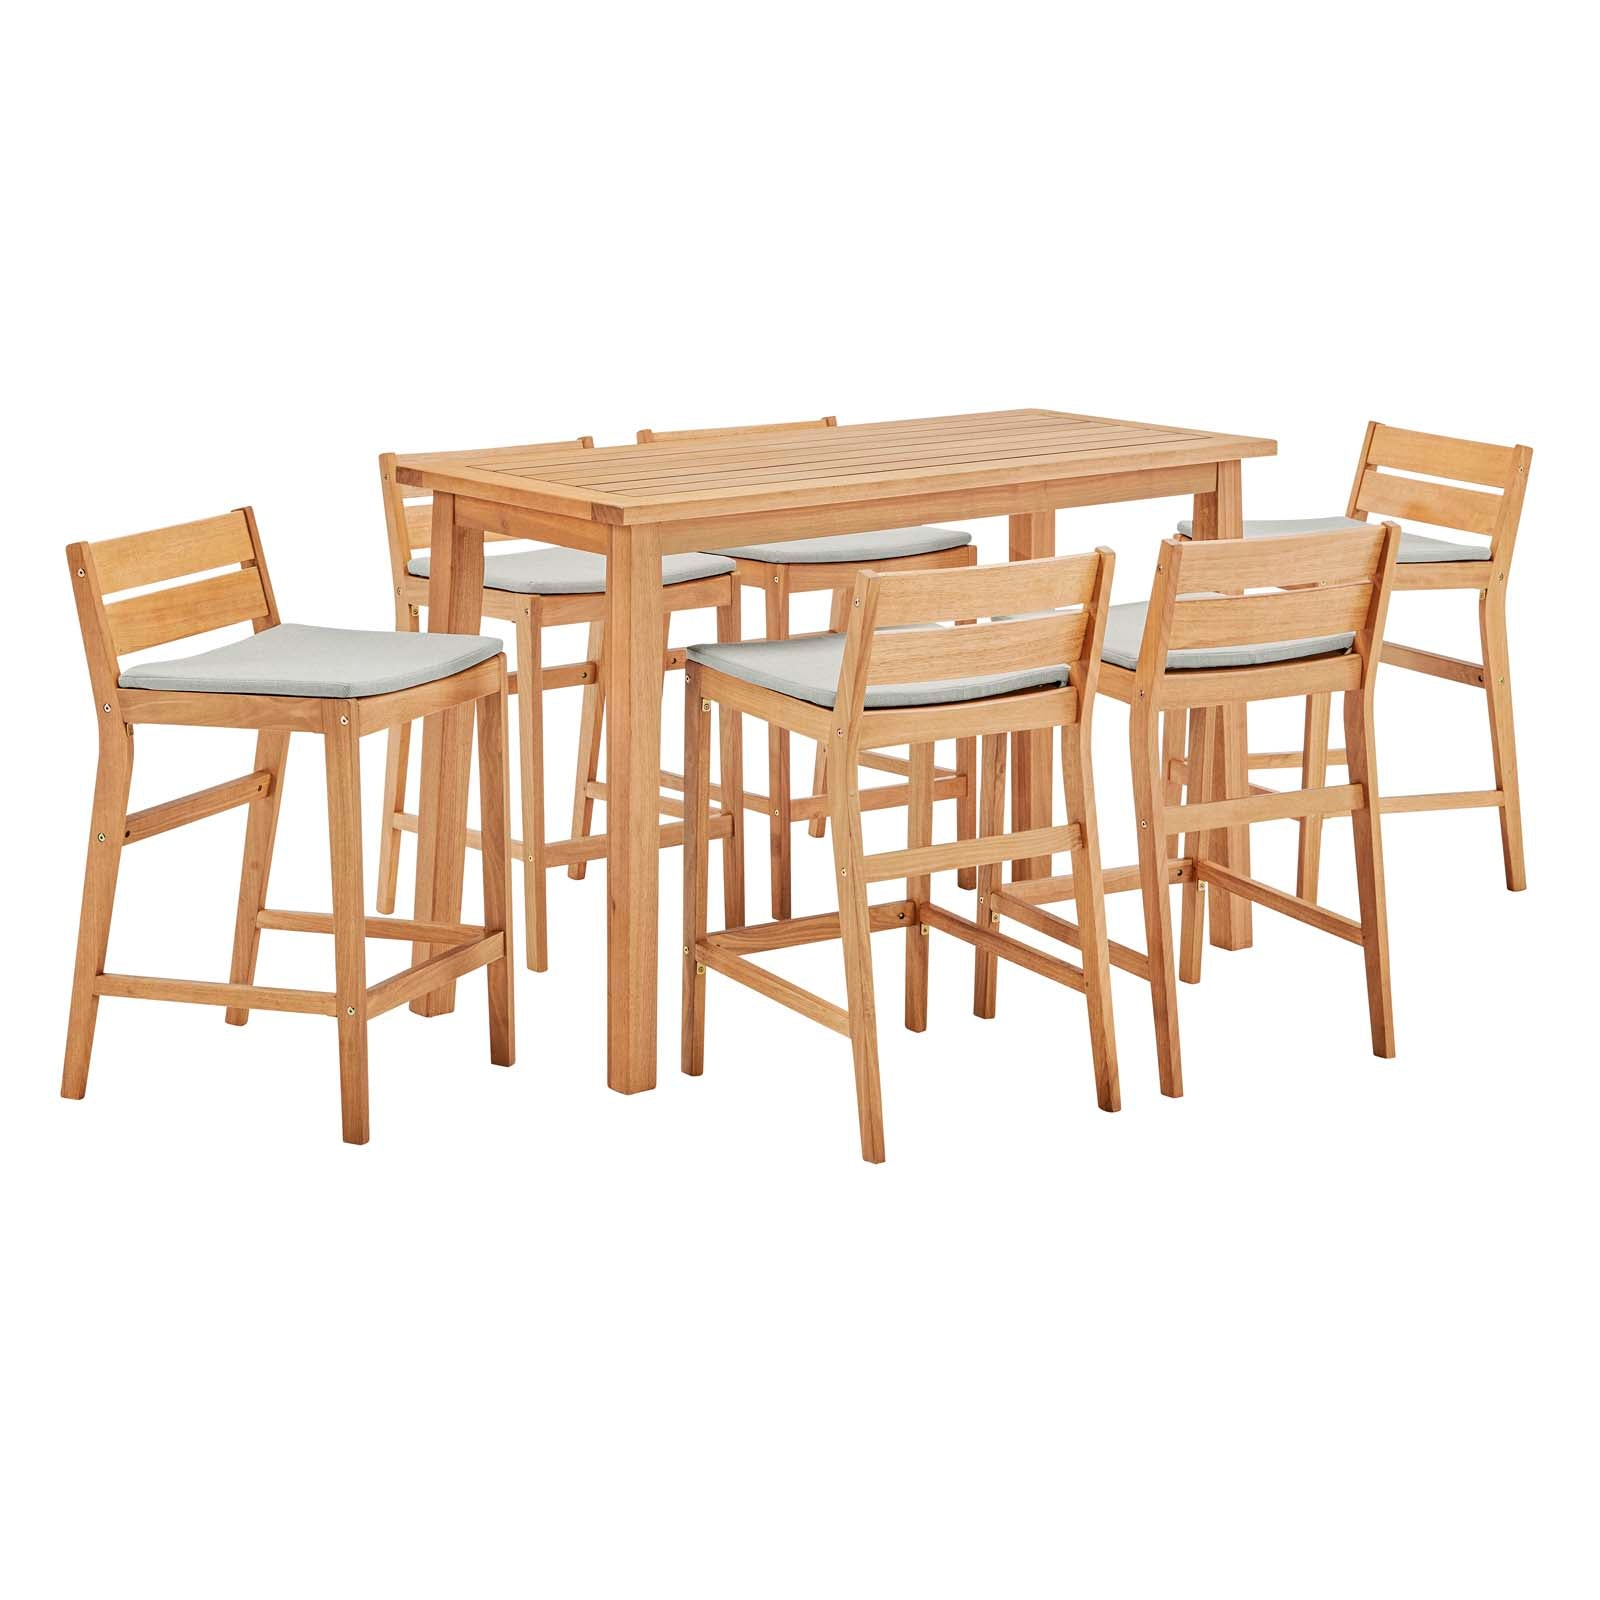 Riverlake 7 Piece Outdoor Patio Ash Wood Bar Set